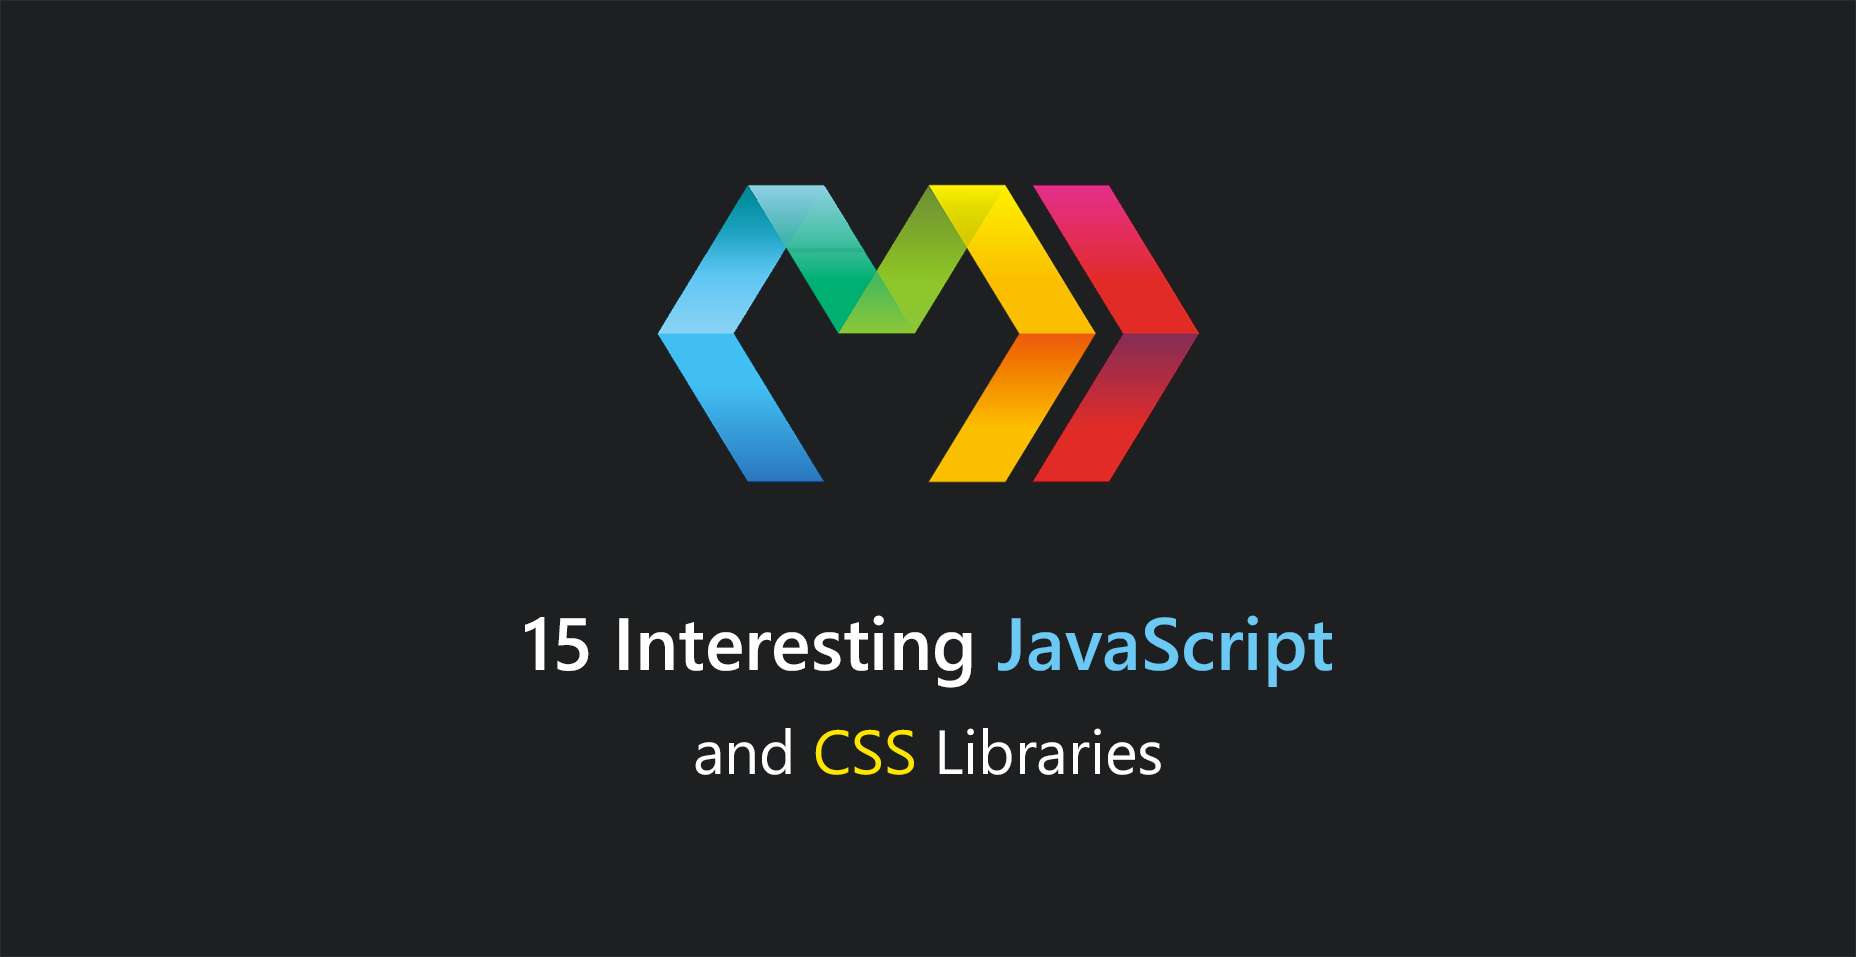 15 Interesting JavaScript and CSS Libraries for September